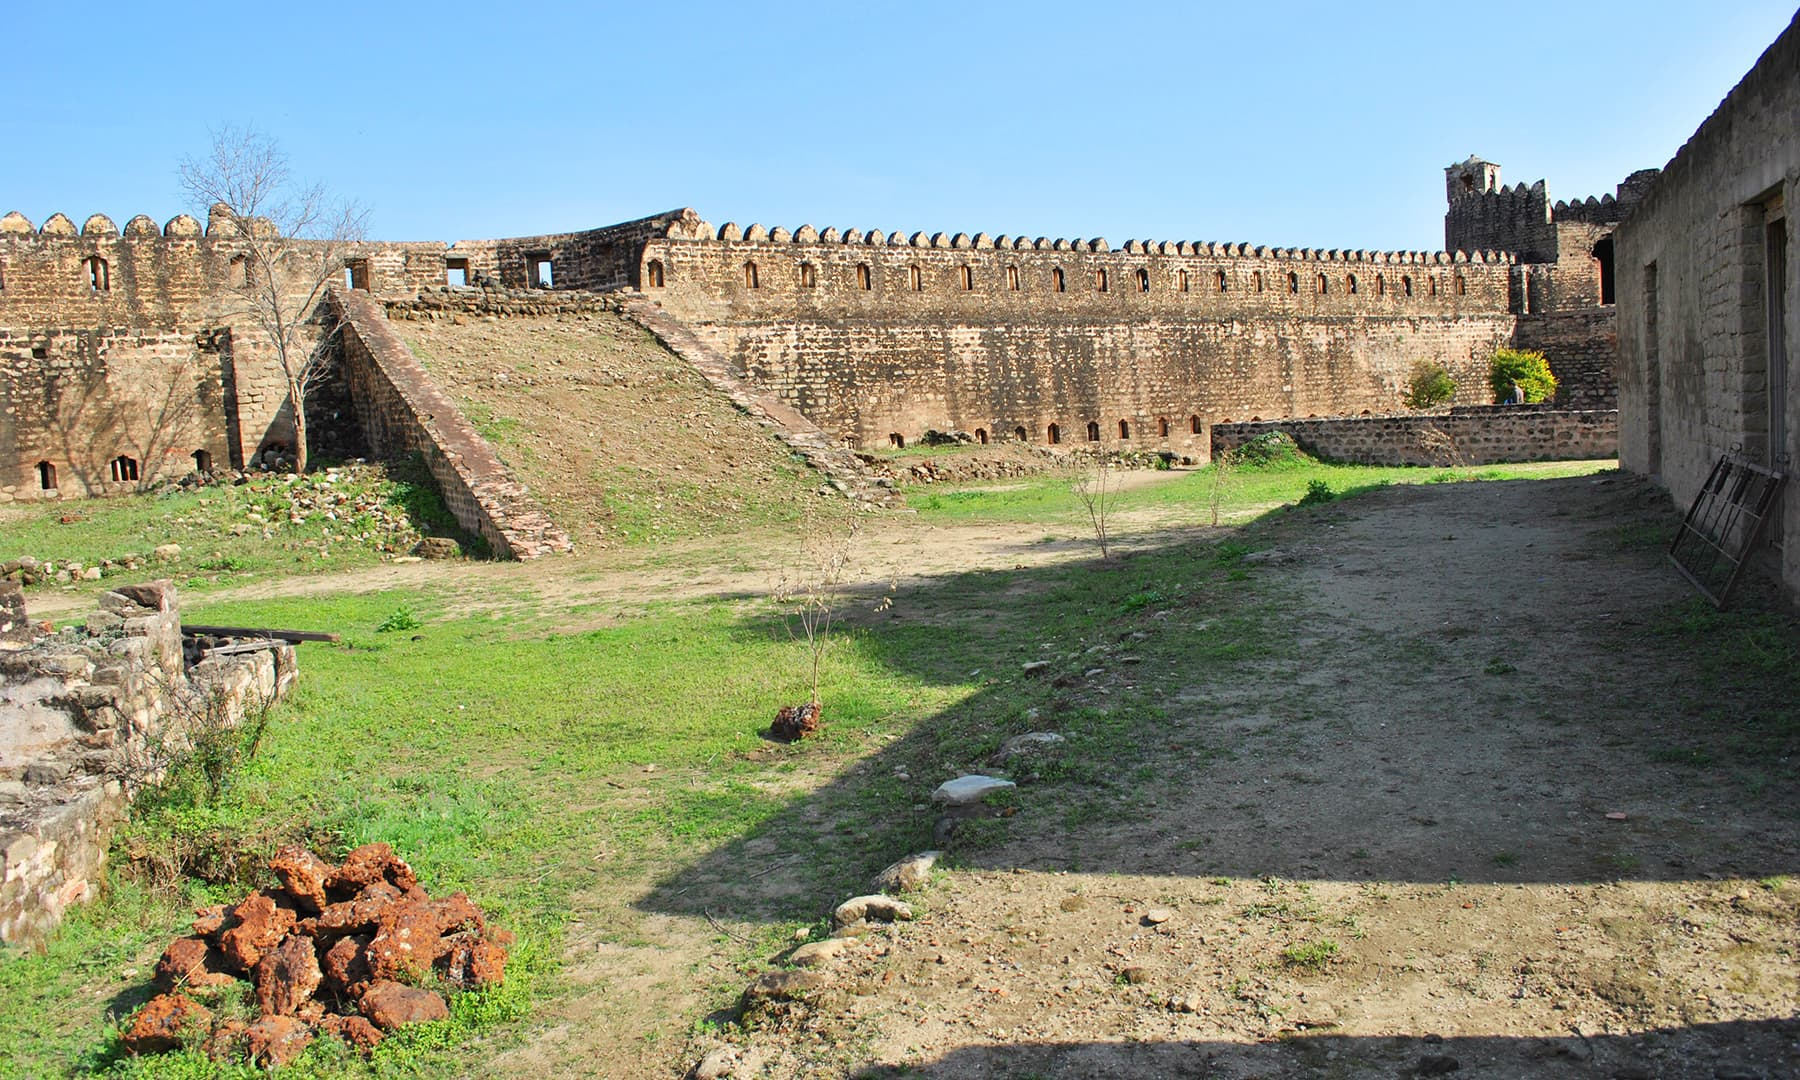 The ramps and crenellations for cannons are alterations of the time when Dogra of Kashmir held this fort in 19th century.